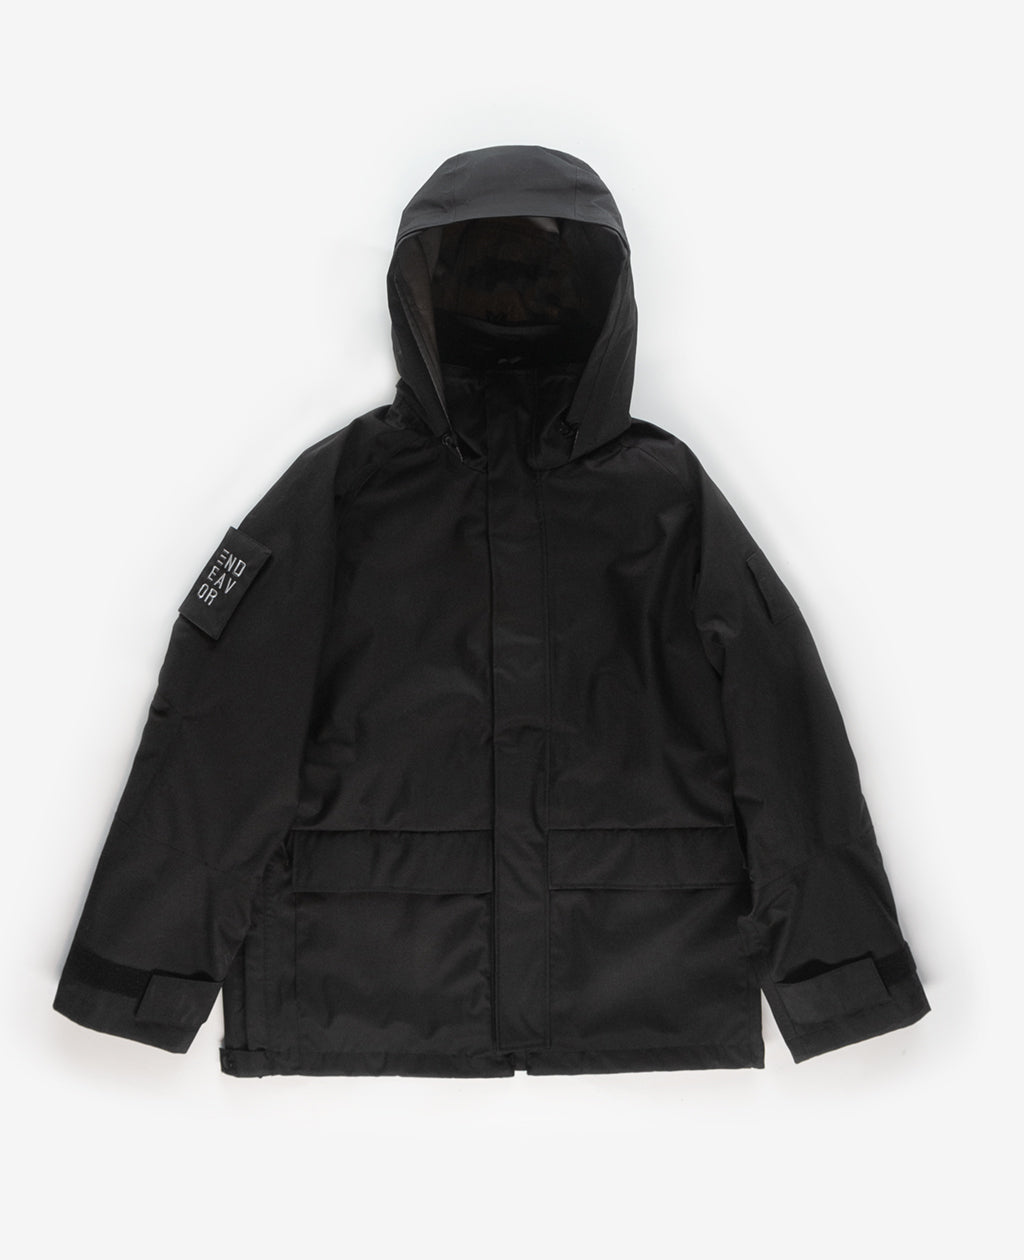 Endeavor Patrol 2-in-1 Jacket